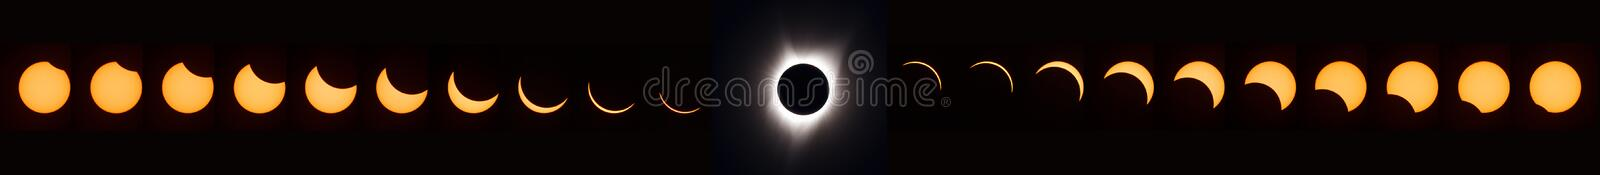 Total solar eclipse 2017 stock illustration